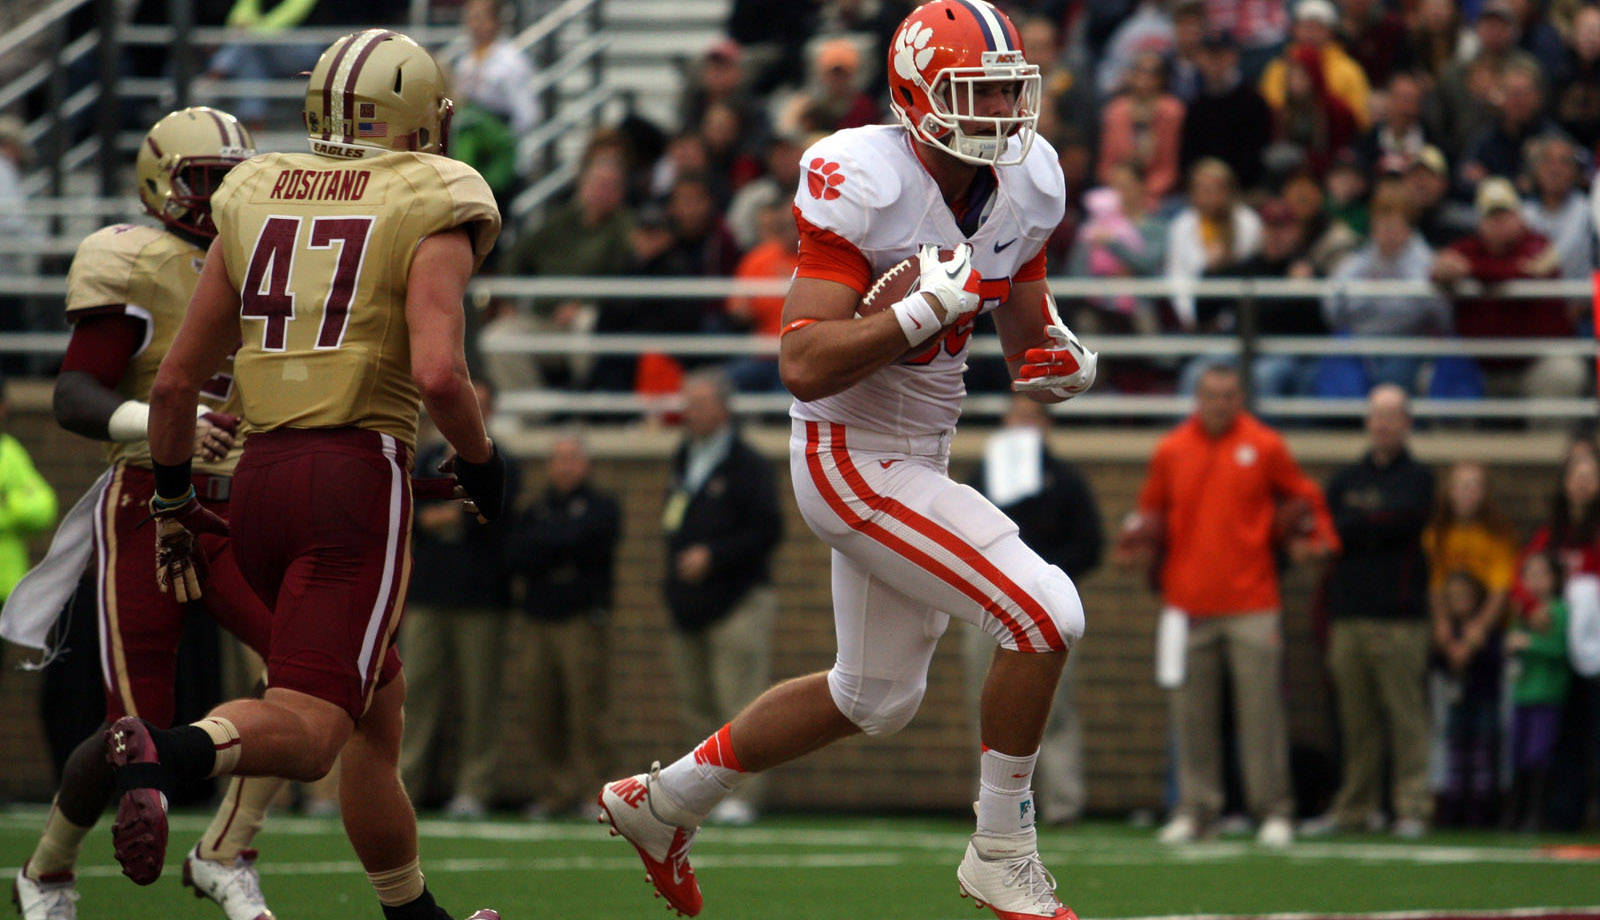 Cooper, Kelly Suffer Torn ACL Injuries